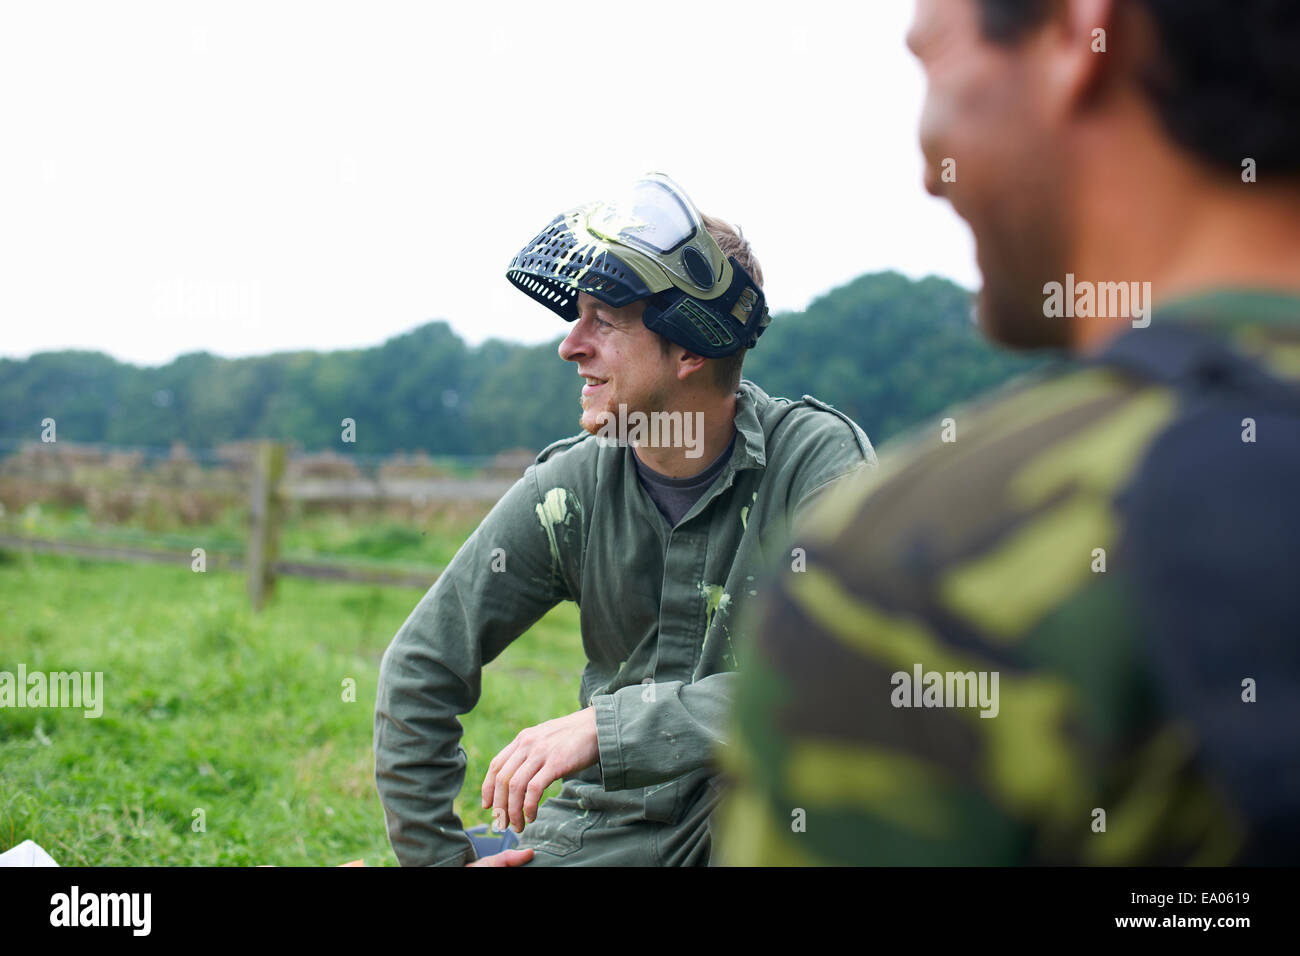 Paintball players preparing and planning game - Stock Image